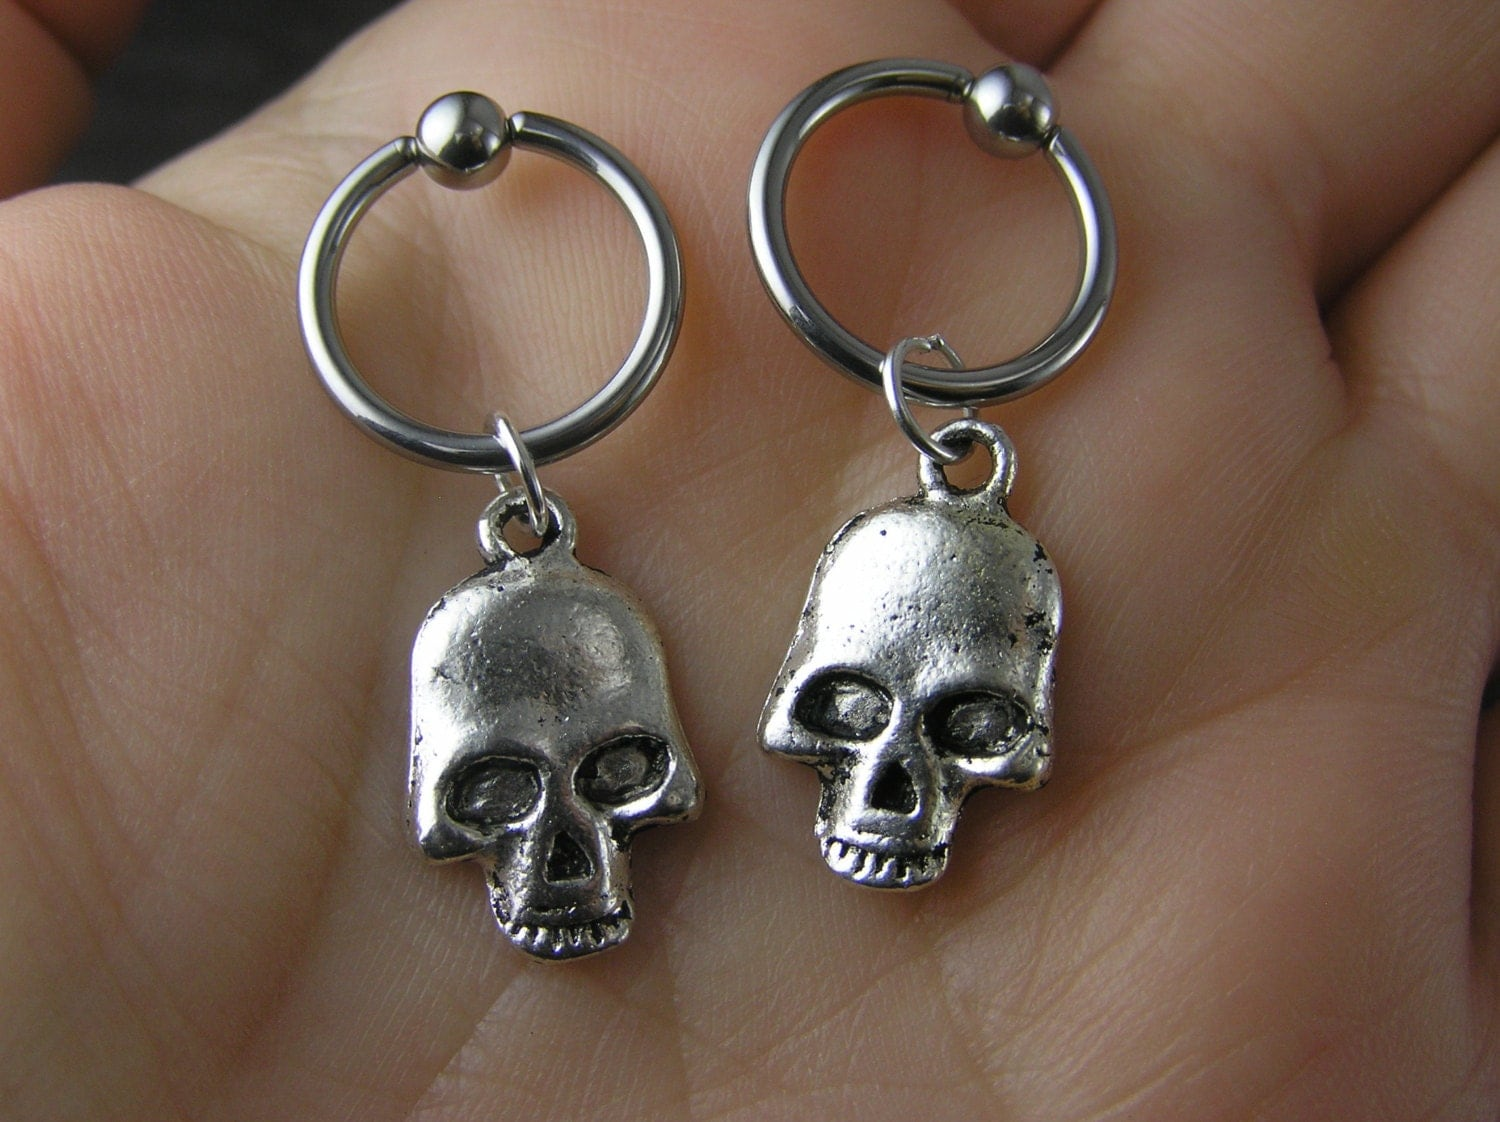 captive bead earrings one silver skull captive bead ring earring 12g 14g 16g 18g 8953